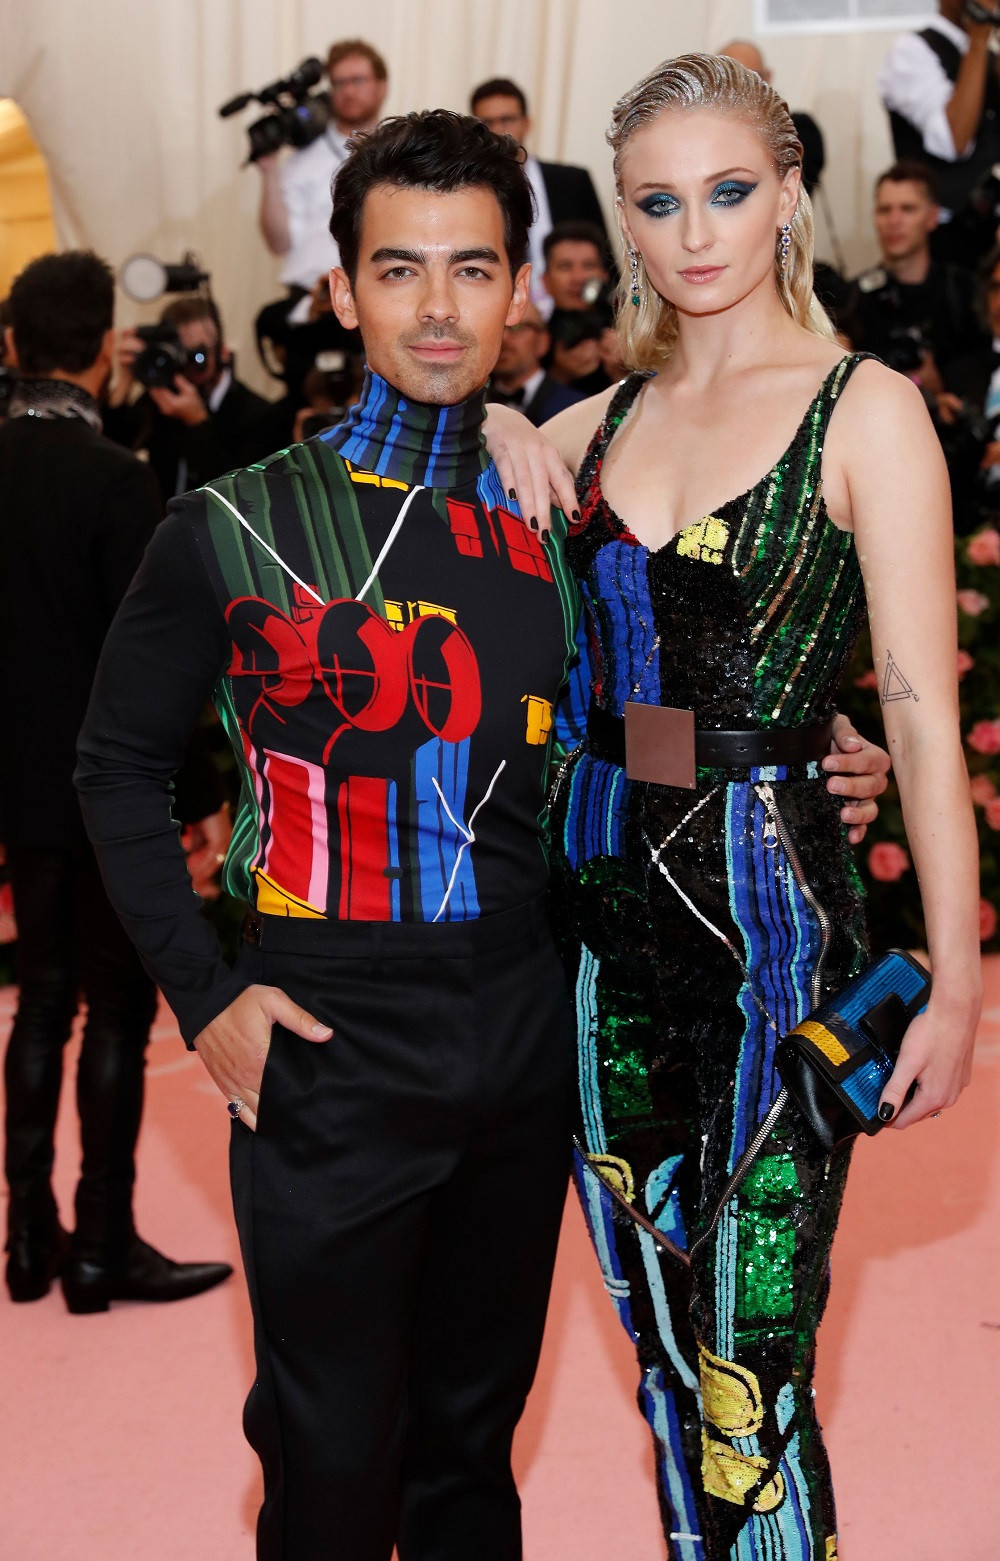 Joe Jonas and Sophie Turner at the Metropolitan Museum of Art Costume Institute Gala in New York City, US, on May 6, 2019.